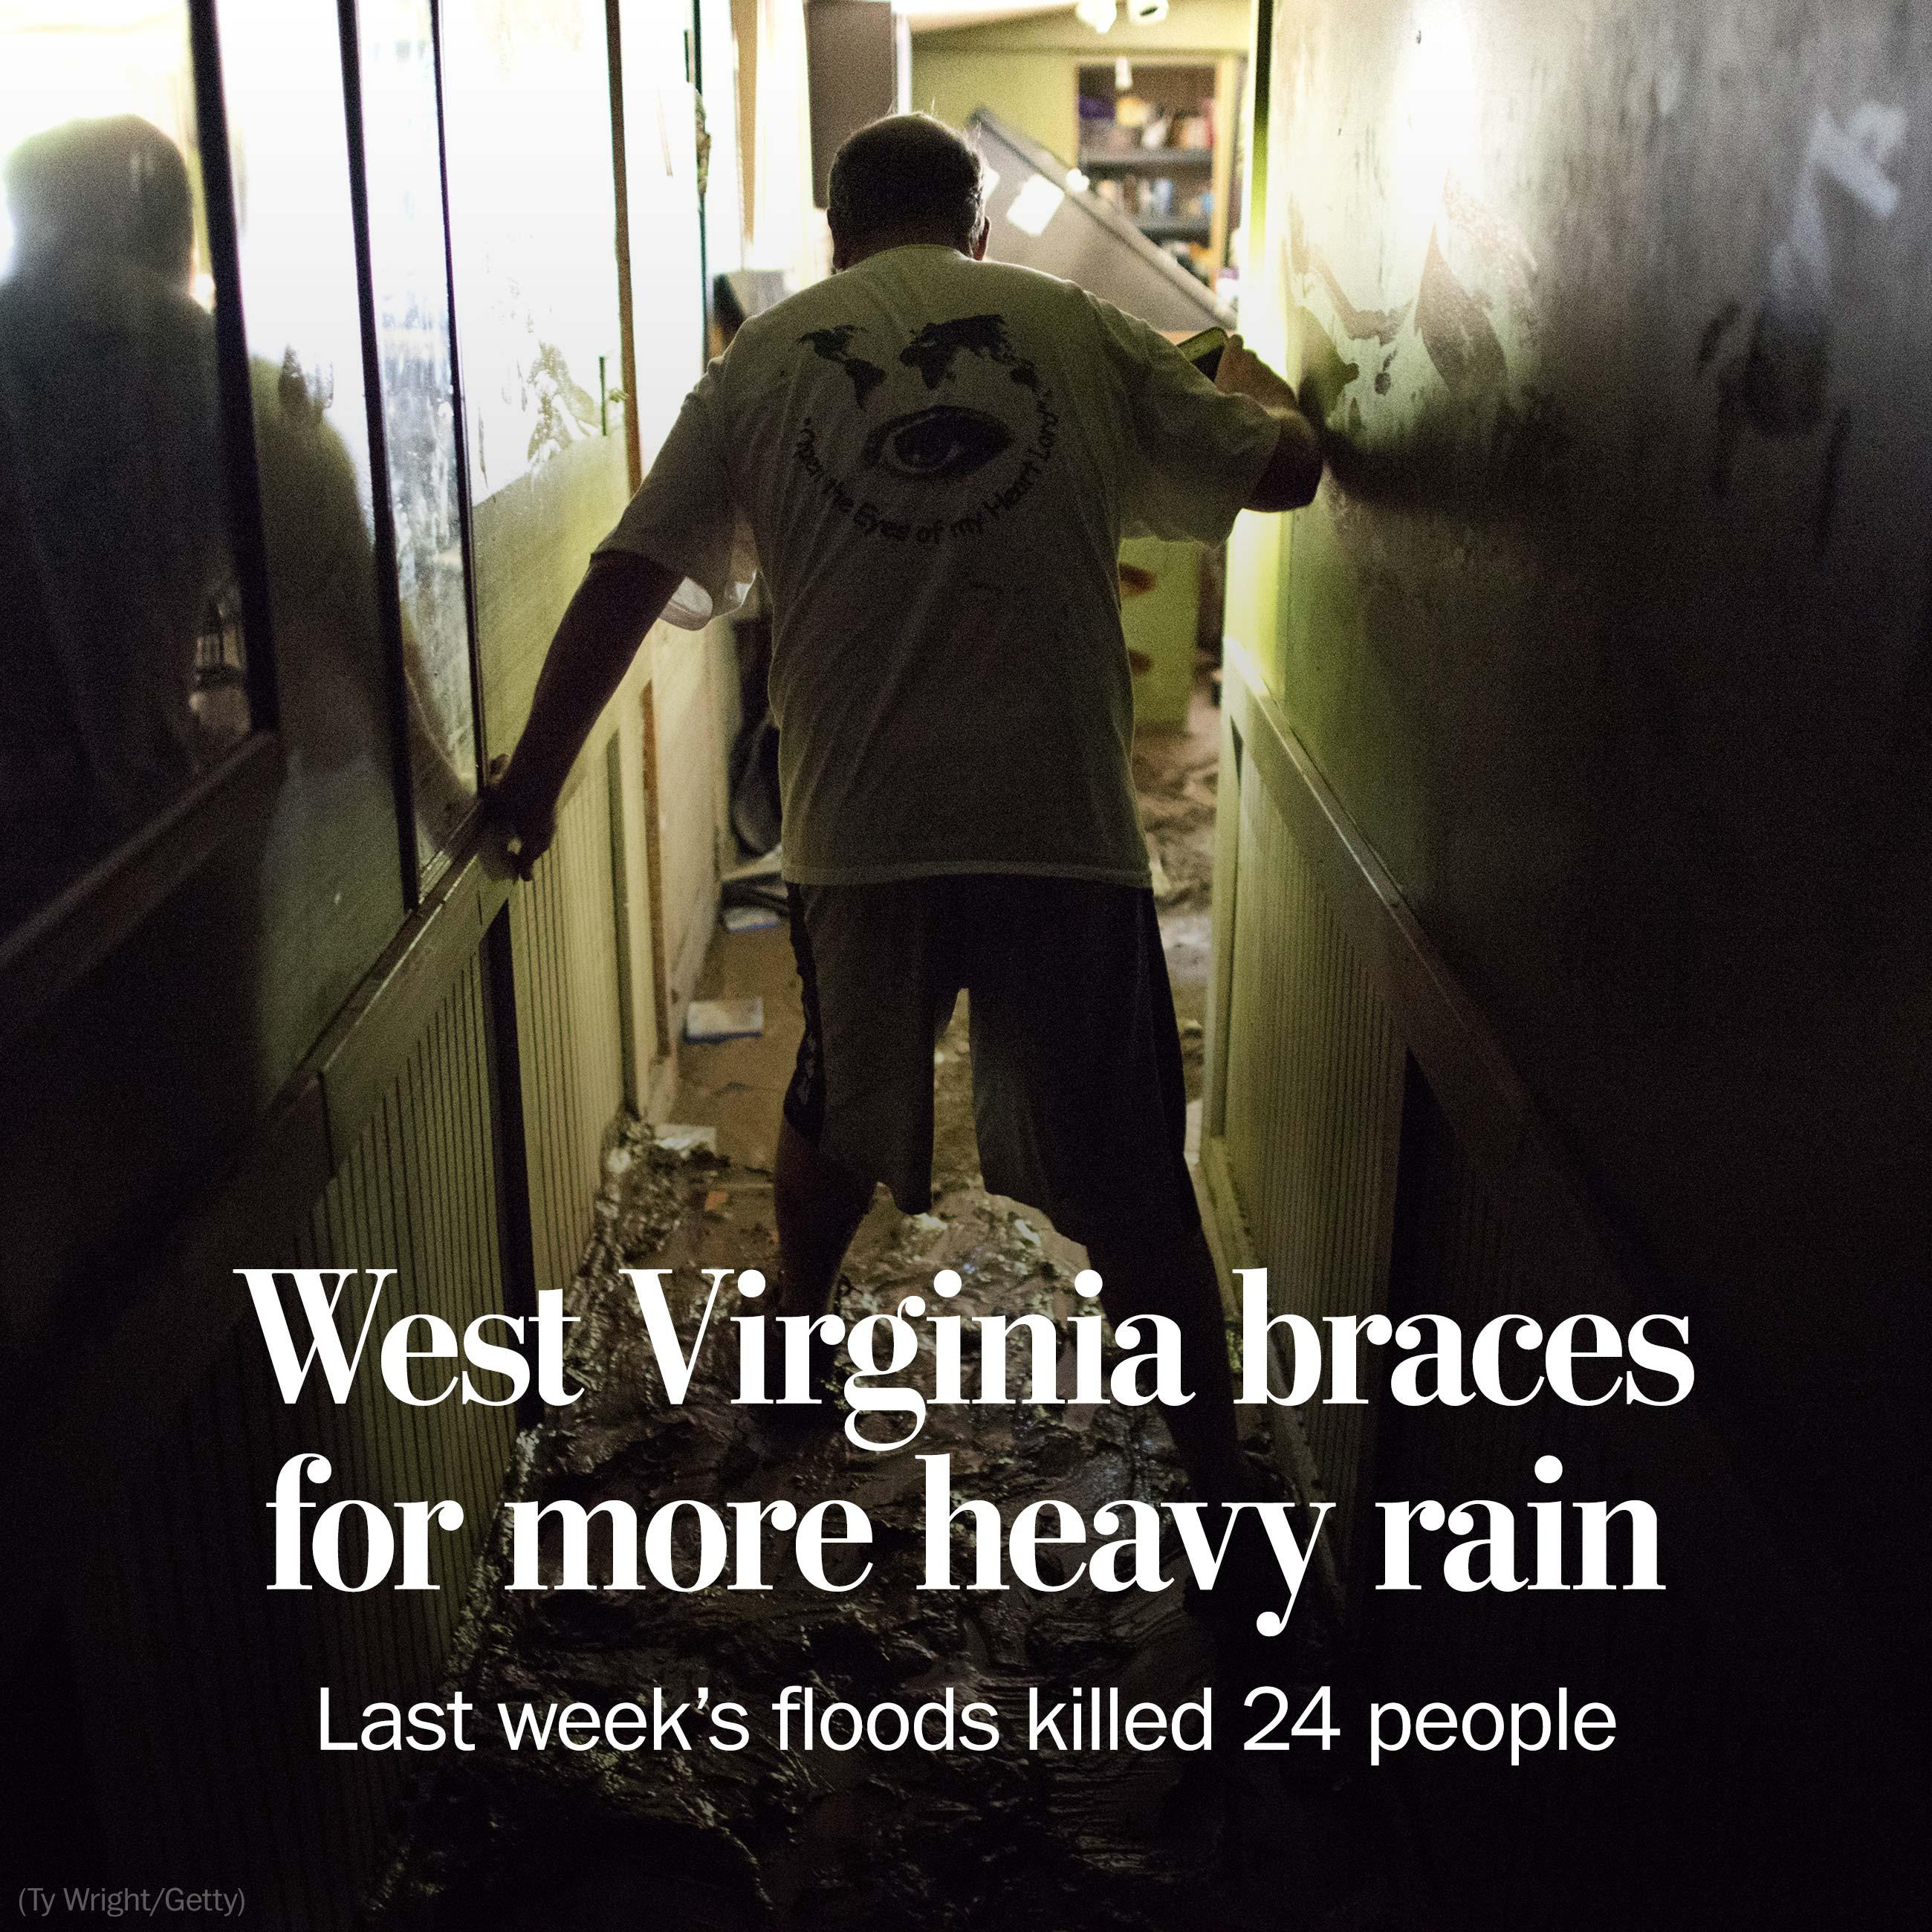 Rain-weary West Virginia braces for more of the same